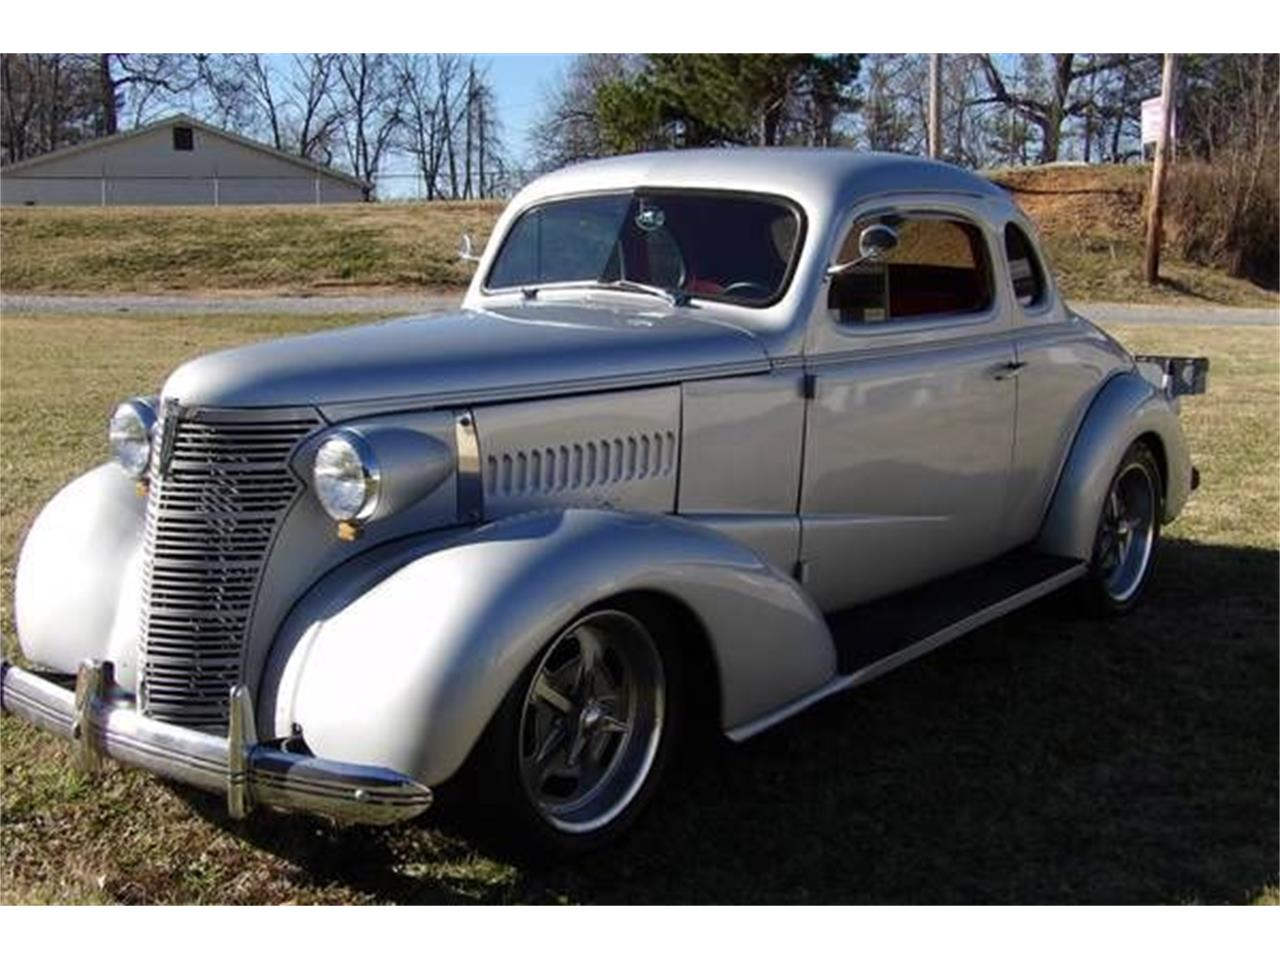 For Sale: 1938 Chevrolet Coupe in Cadillac, Michigan